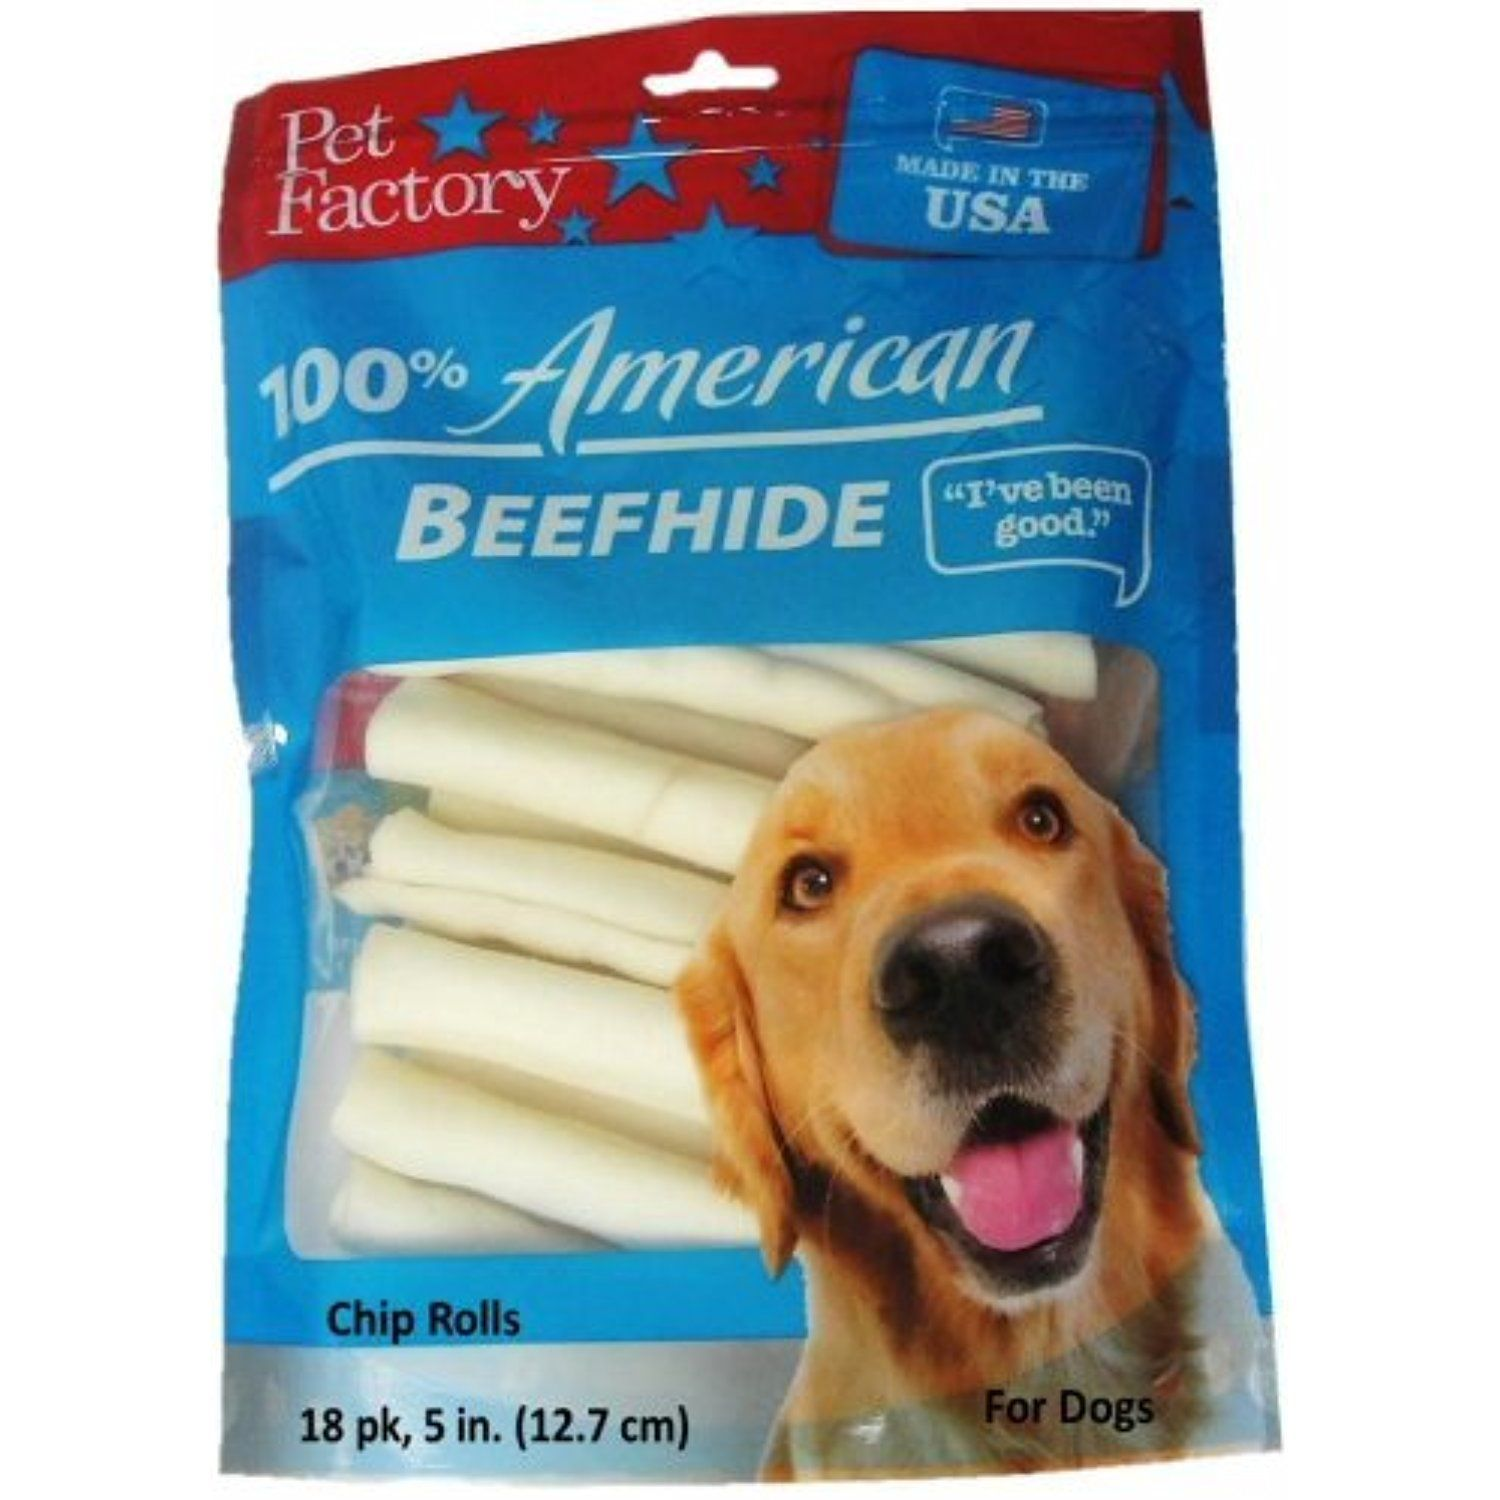 Pet Factory U S A Beef Hide Chip Rolls Chews For Dogs 18 Pack